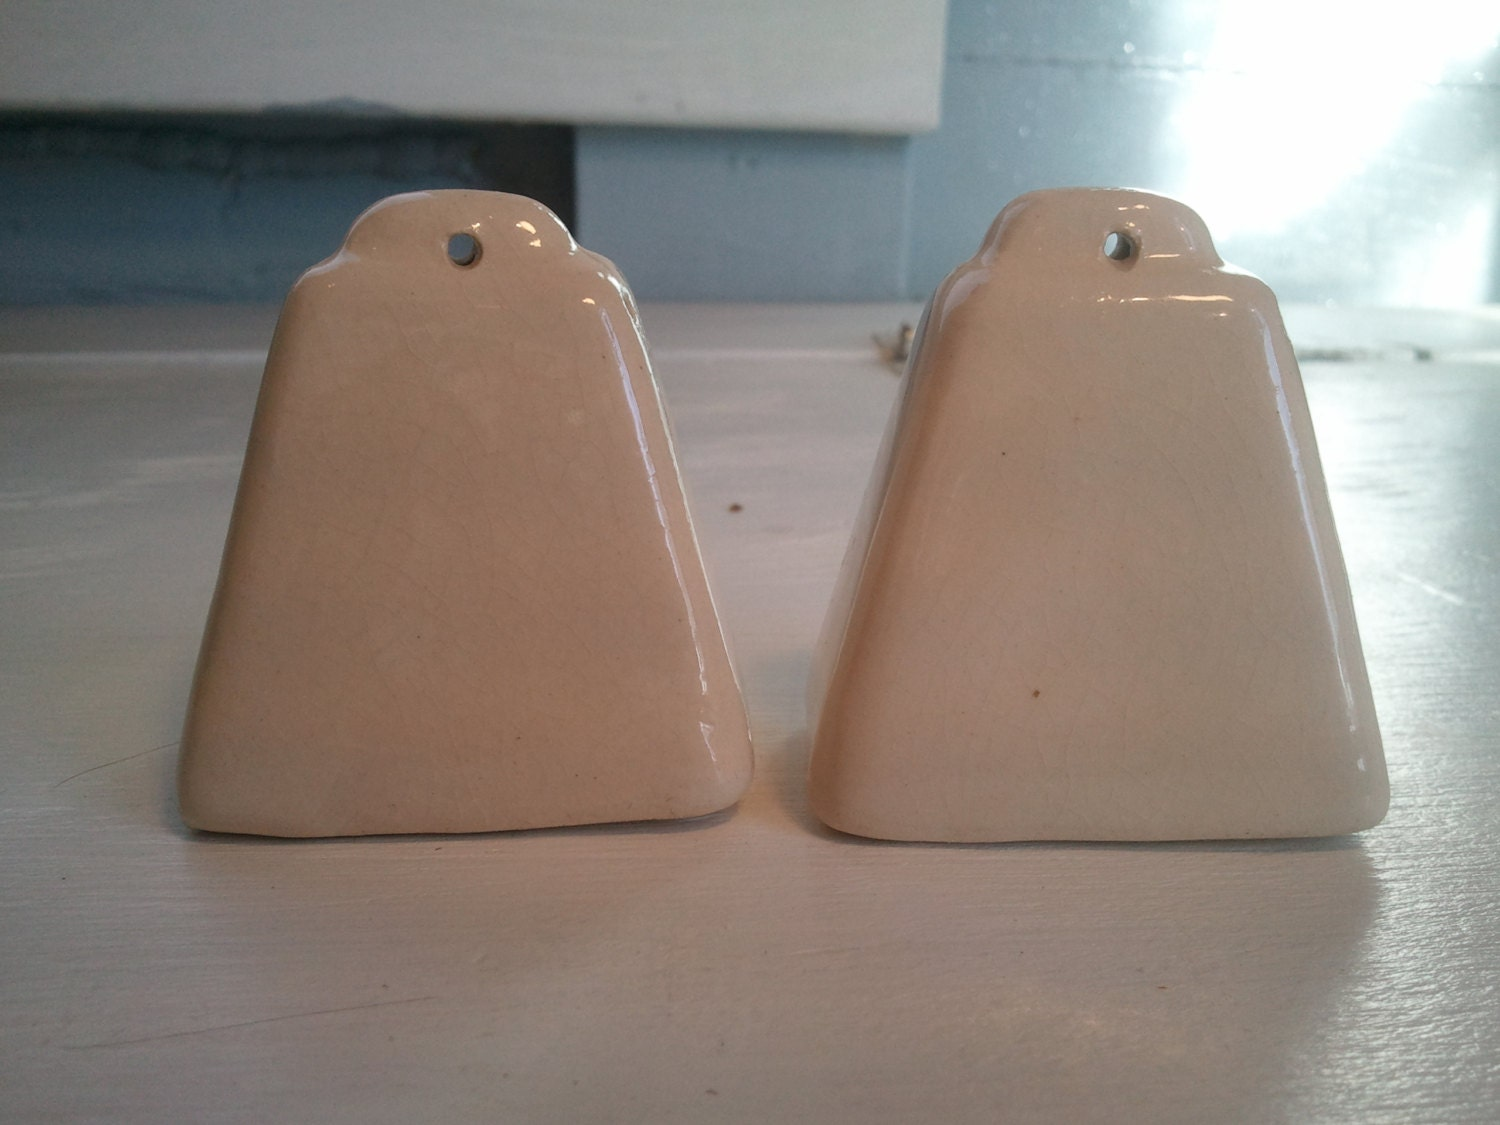 Salt And Pepper Shakers Cow Bell Vintage White Ceramic Farmhouse Country Kitchen Decor Gift Idea Photo Prop Rhymeswithdaughter